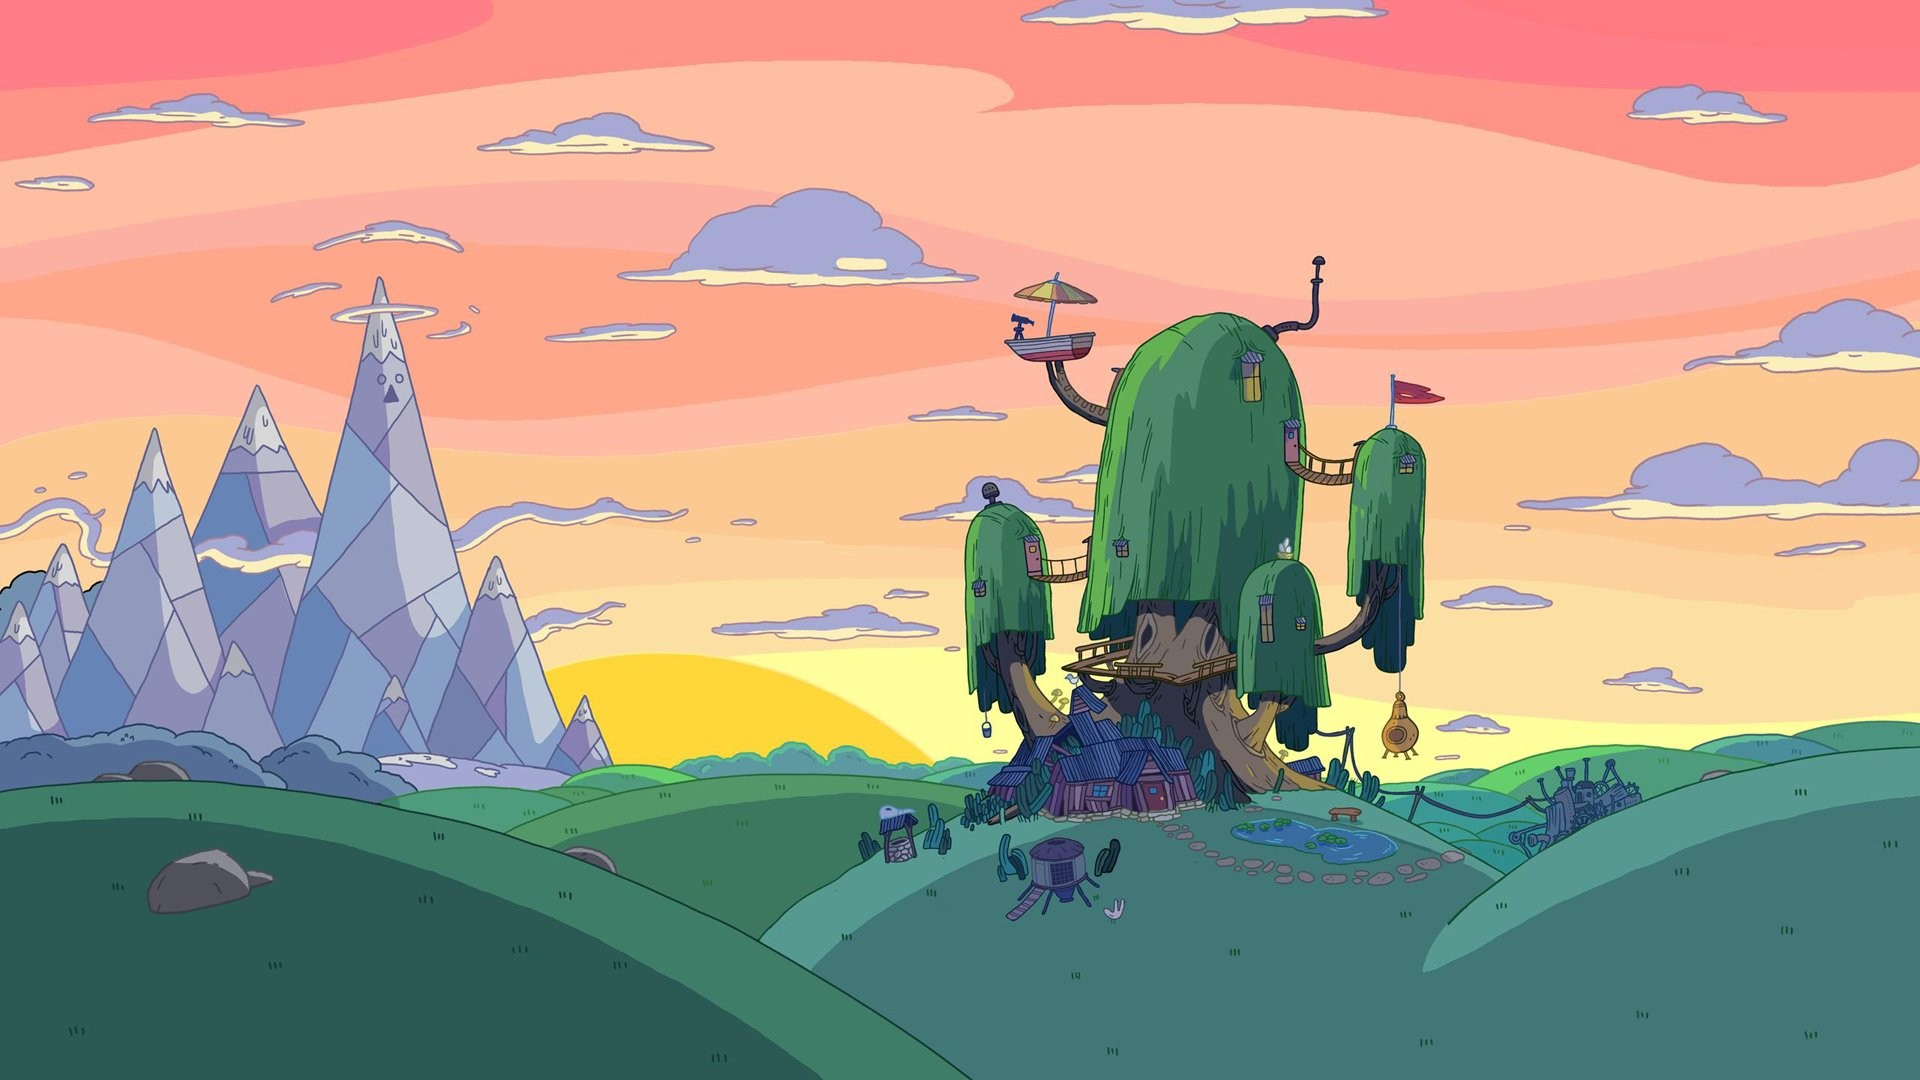 Adventure time backgrounds 69 images 1920x1080 adventure time finn flame princess hd wallpaper background id442432 voltagebd Choice Image